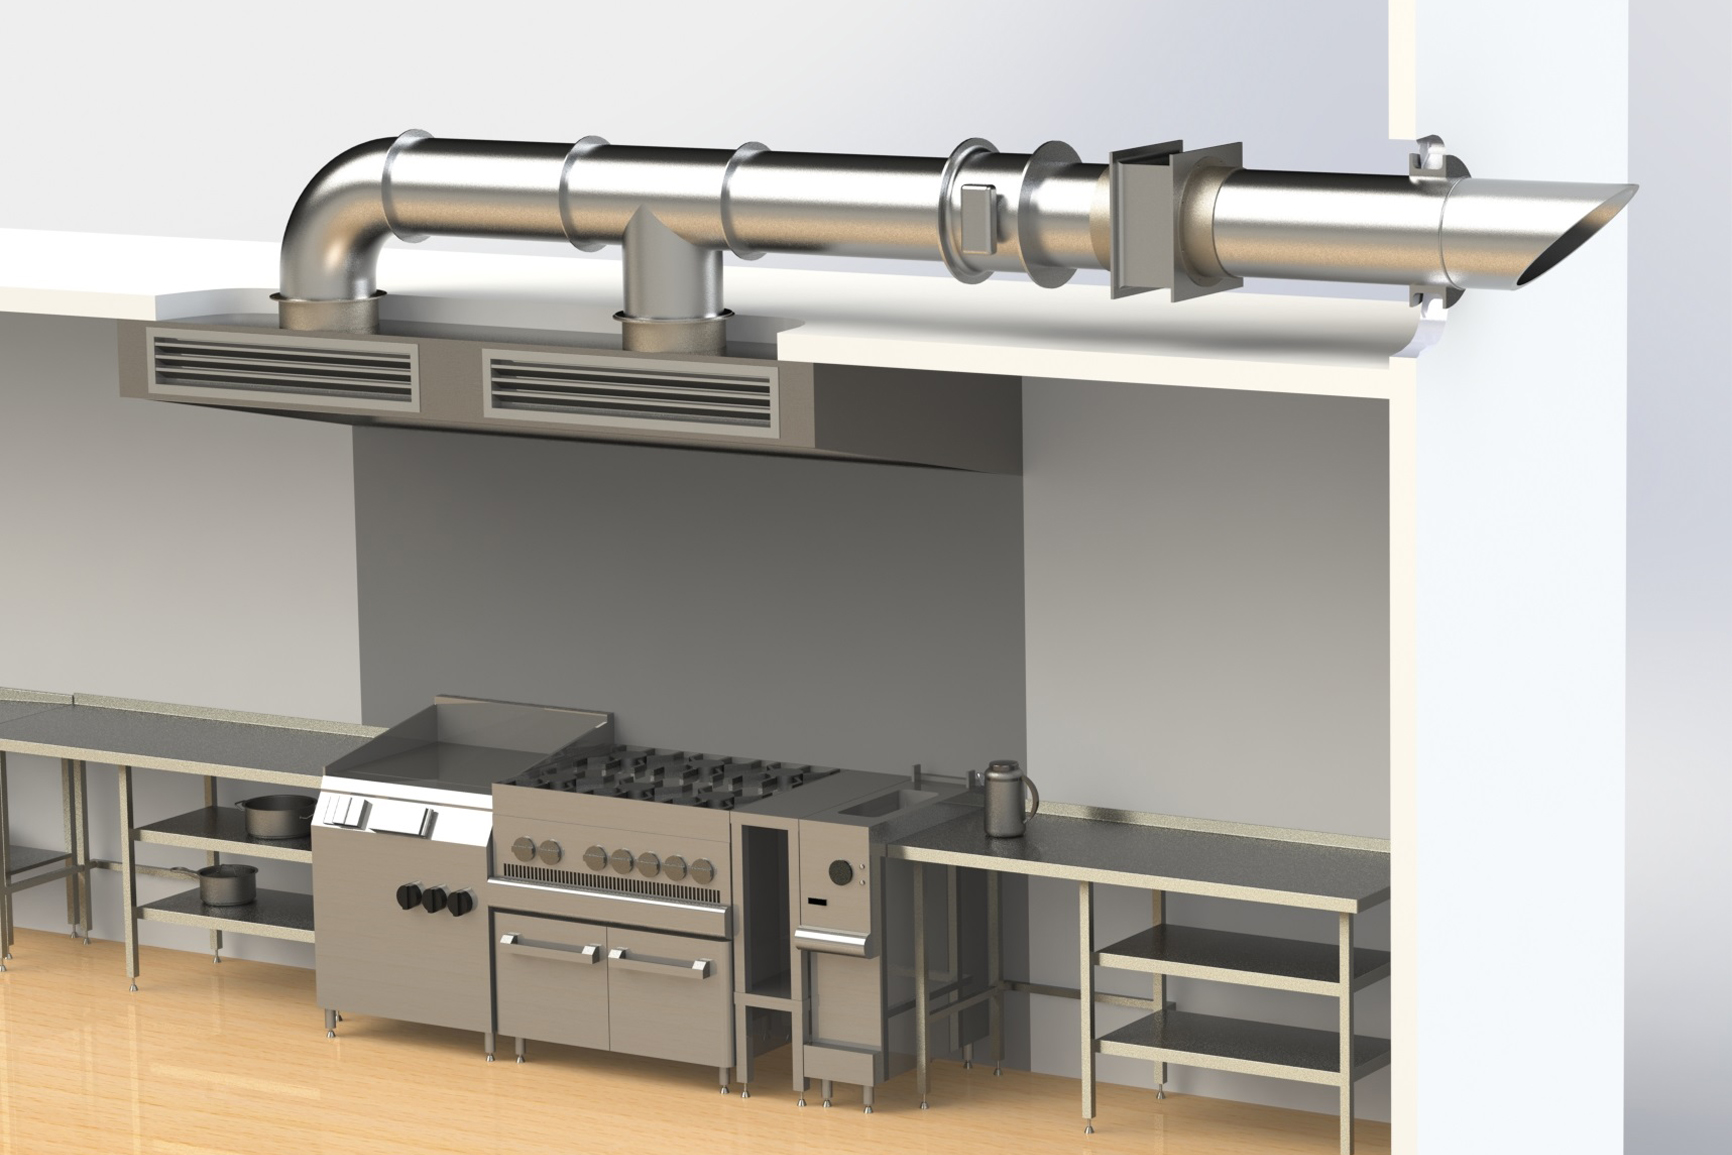 Mewna engineering pvt ltd services - Commercial kitchen exhaust system design ...